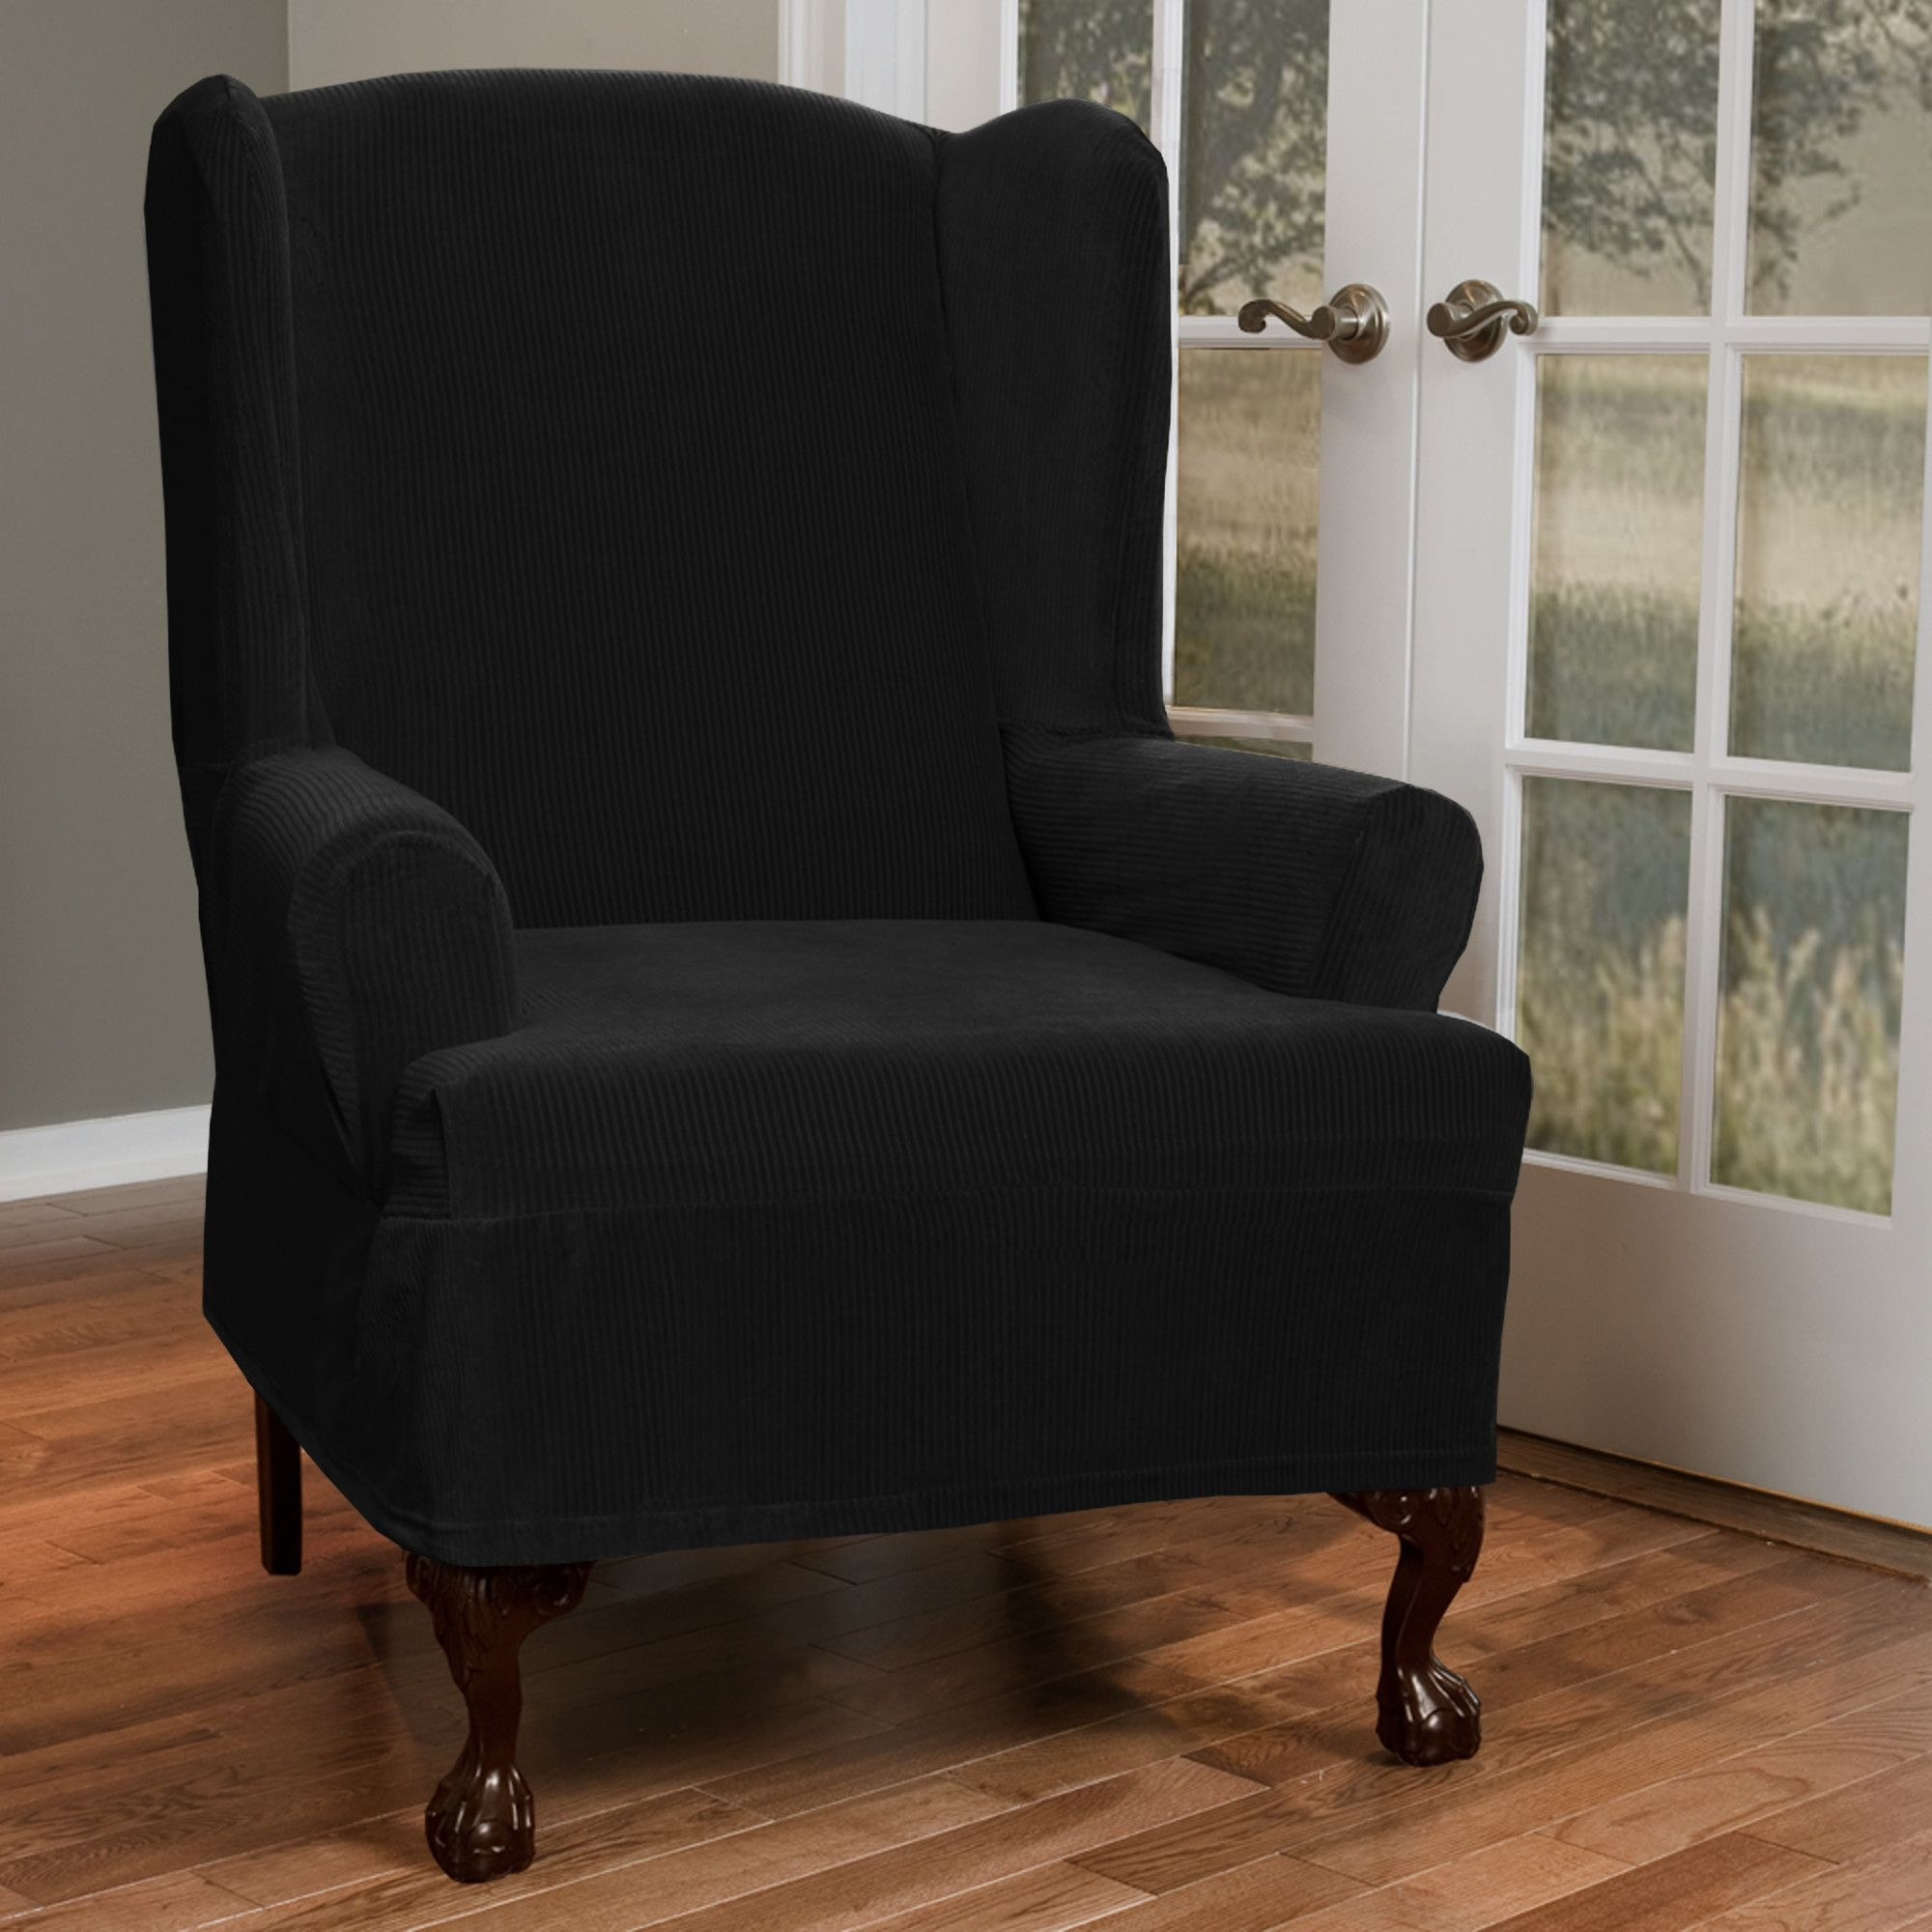 Maytex Collin Stretch 1 Piece Slipcover Wing Chair, Black